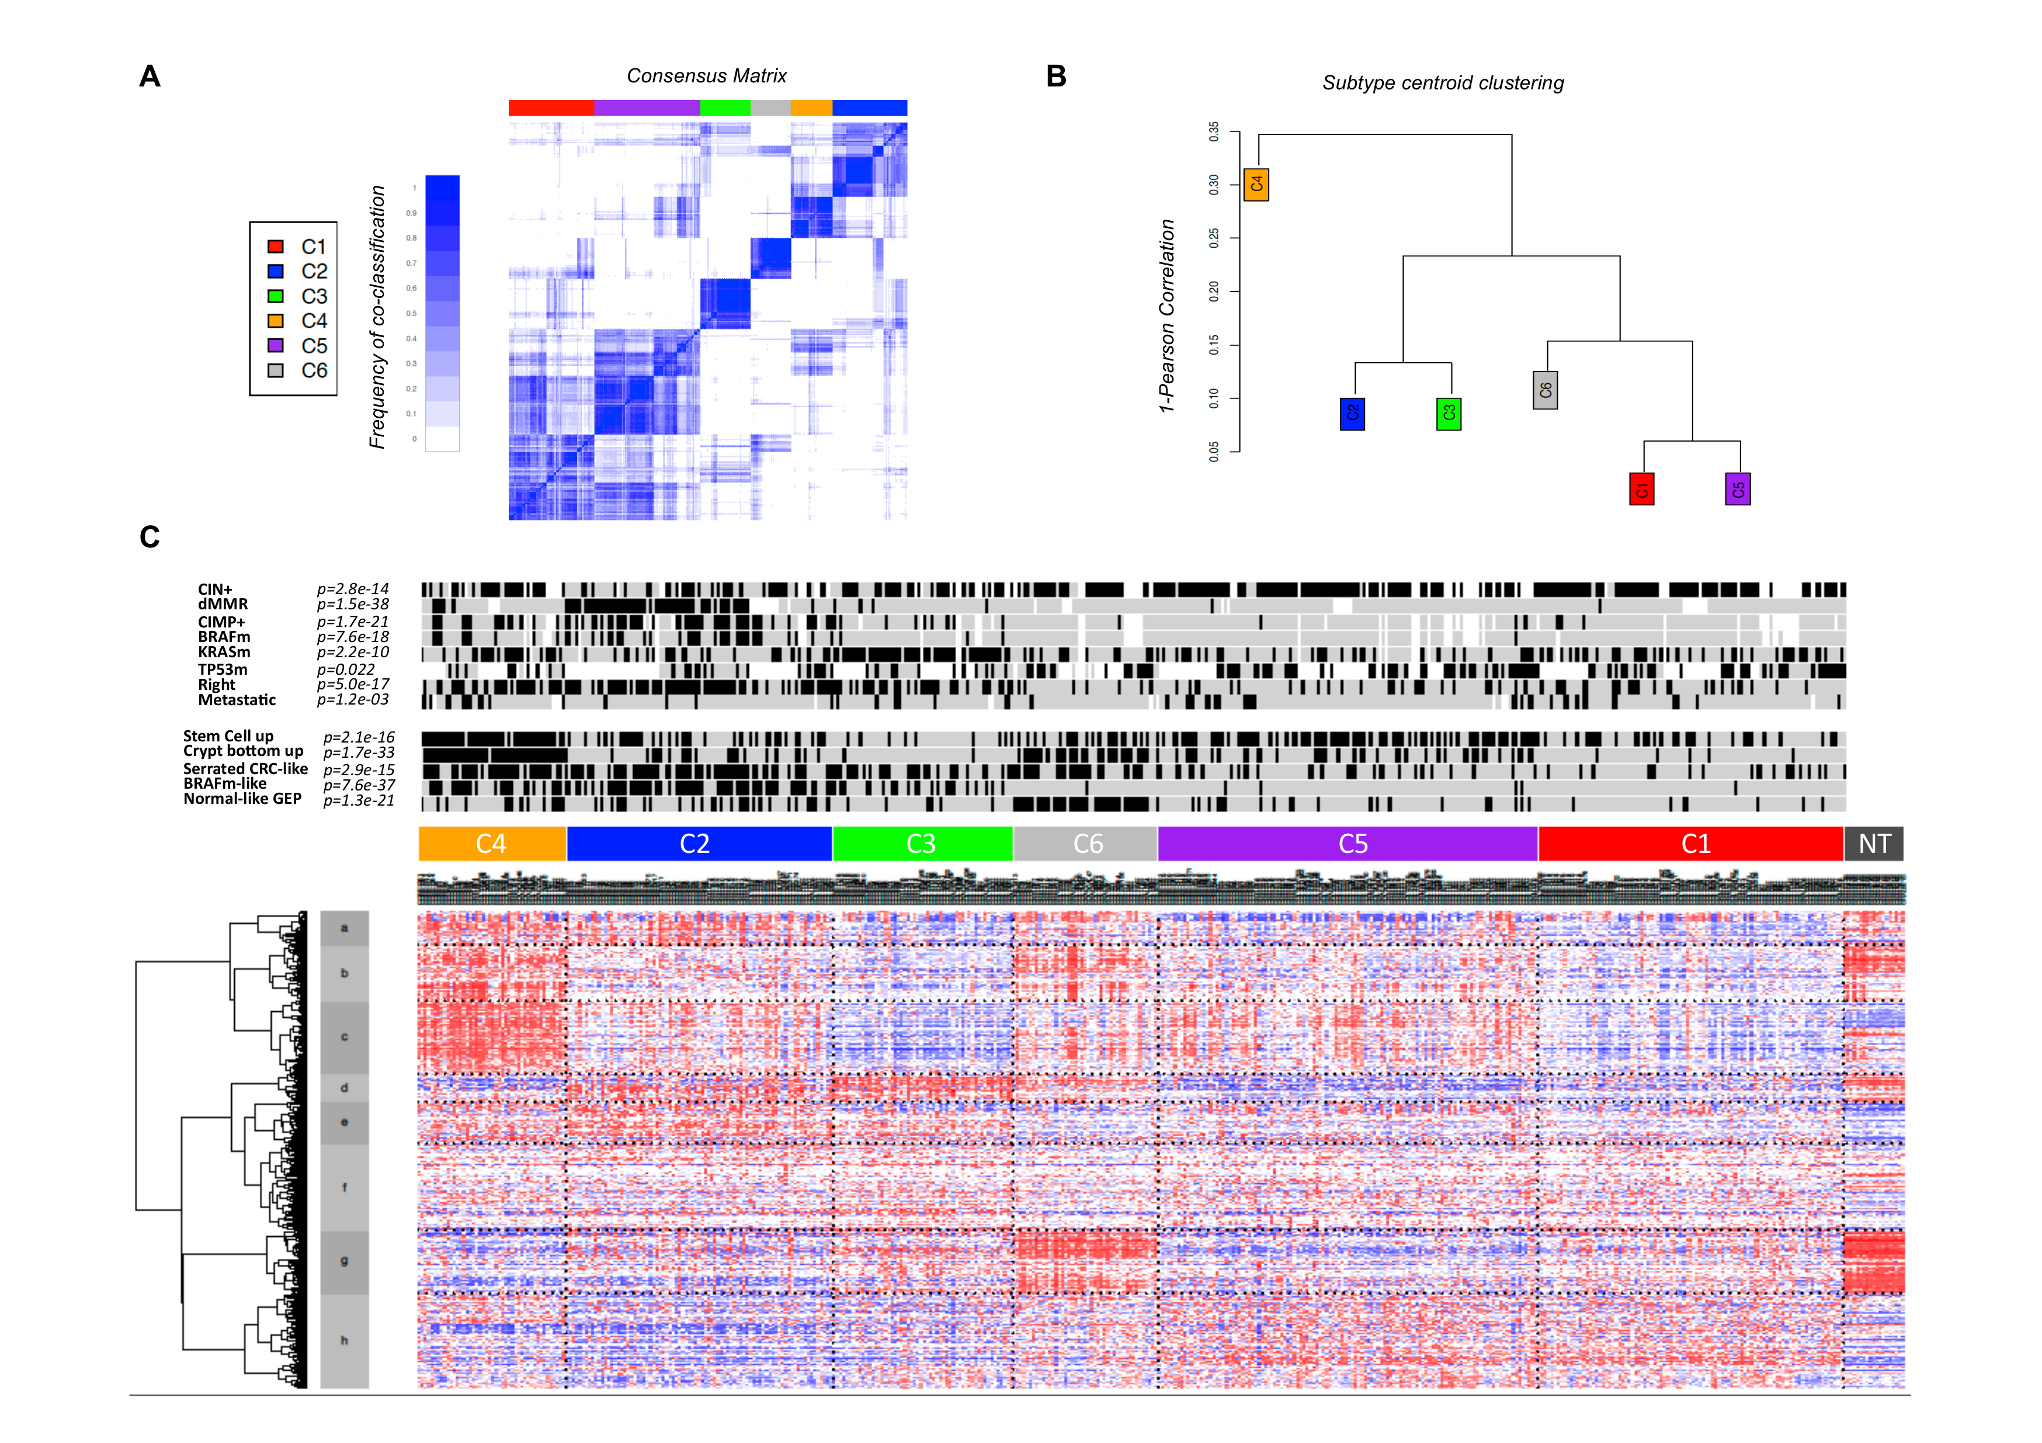 Unsupervised gene expression analysis of the discovery set of 443 colon cancers.